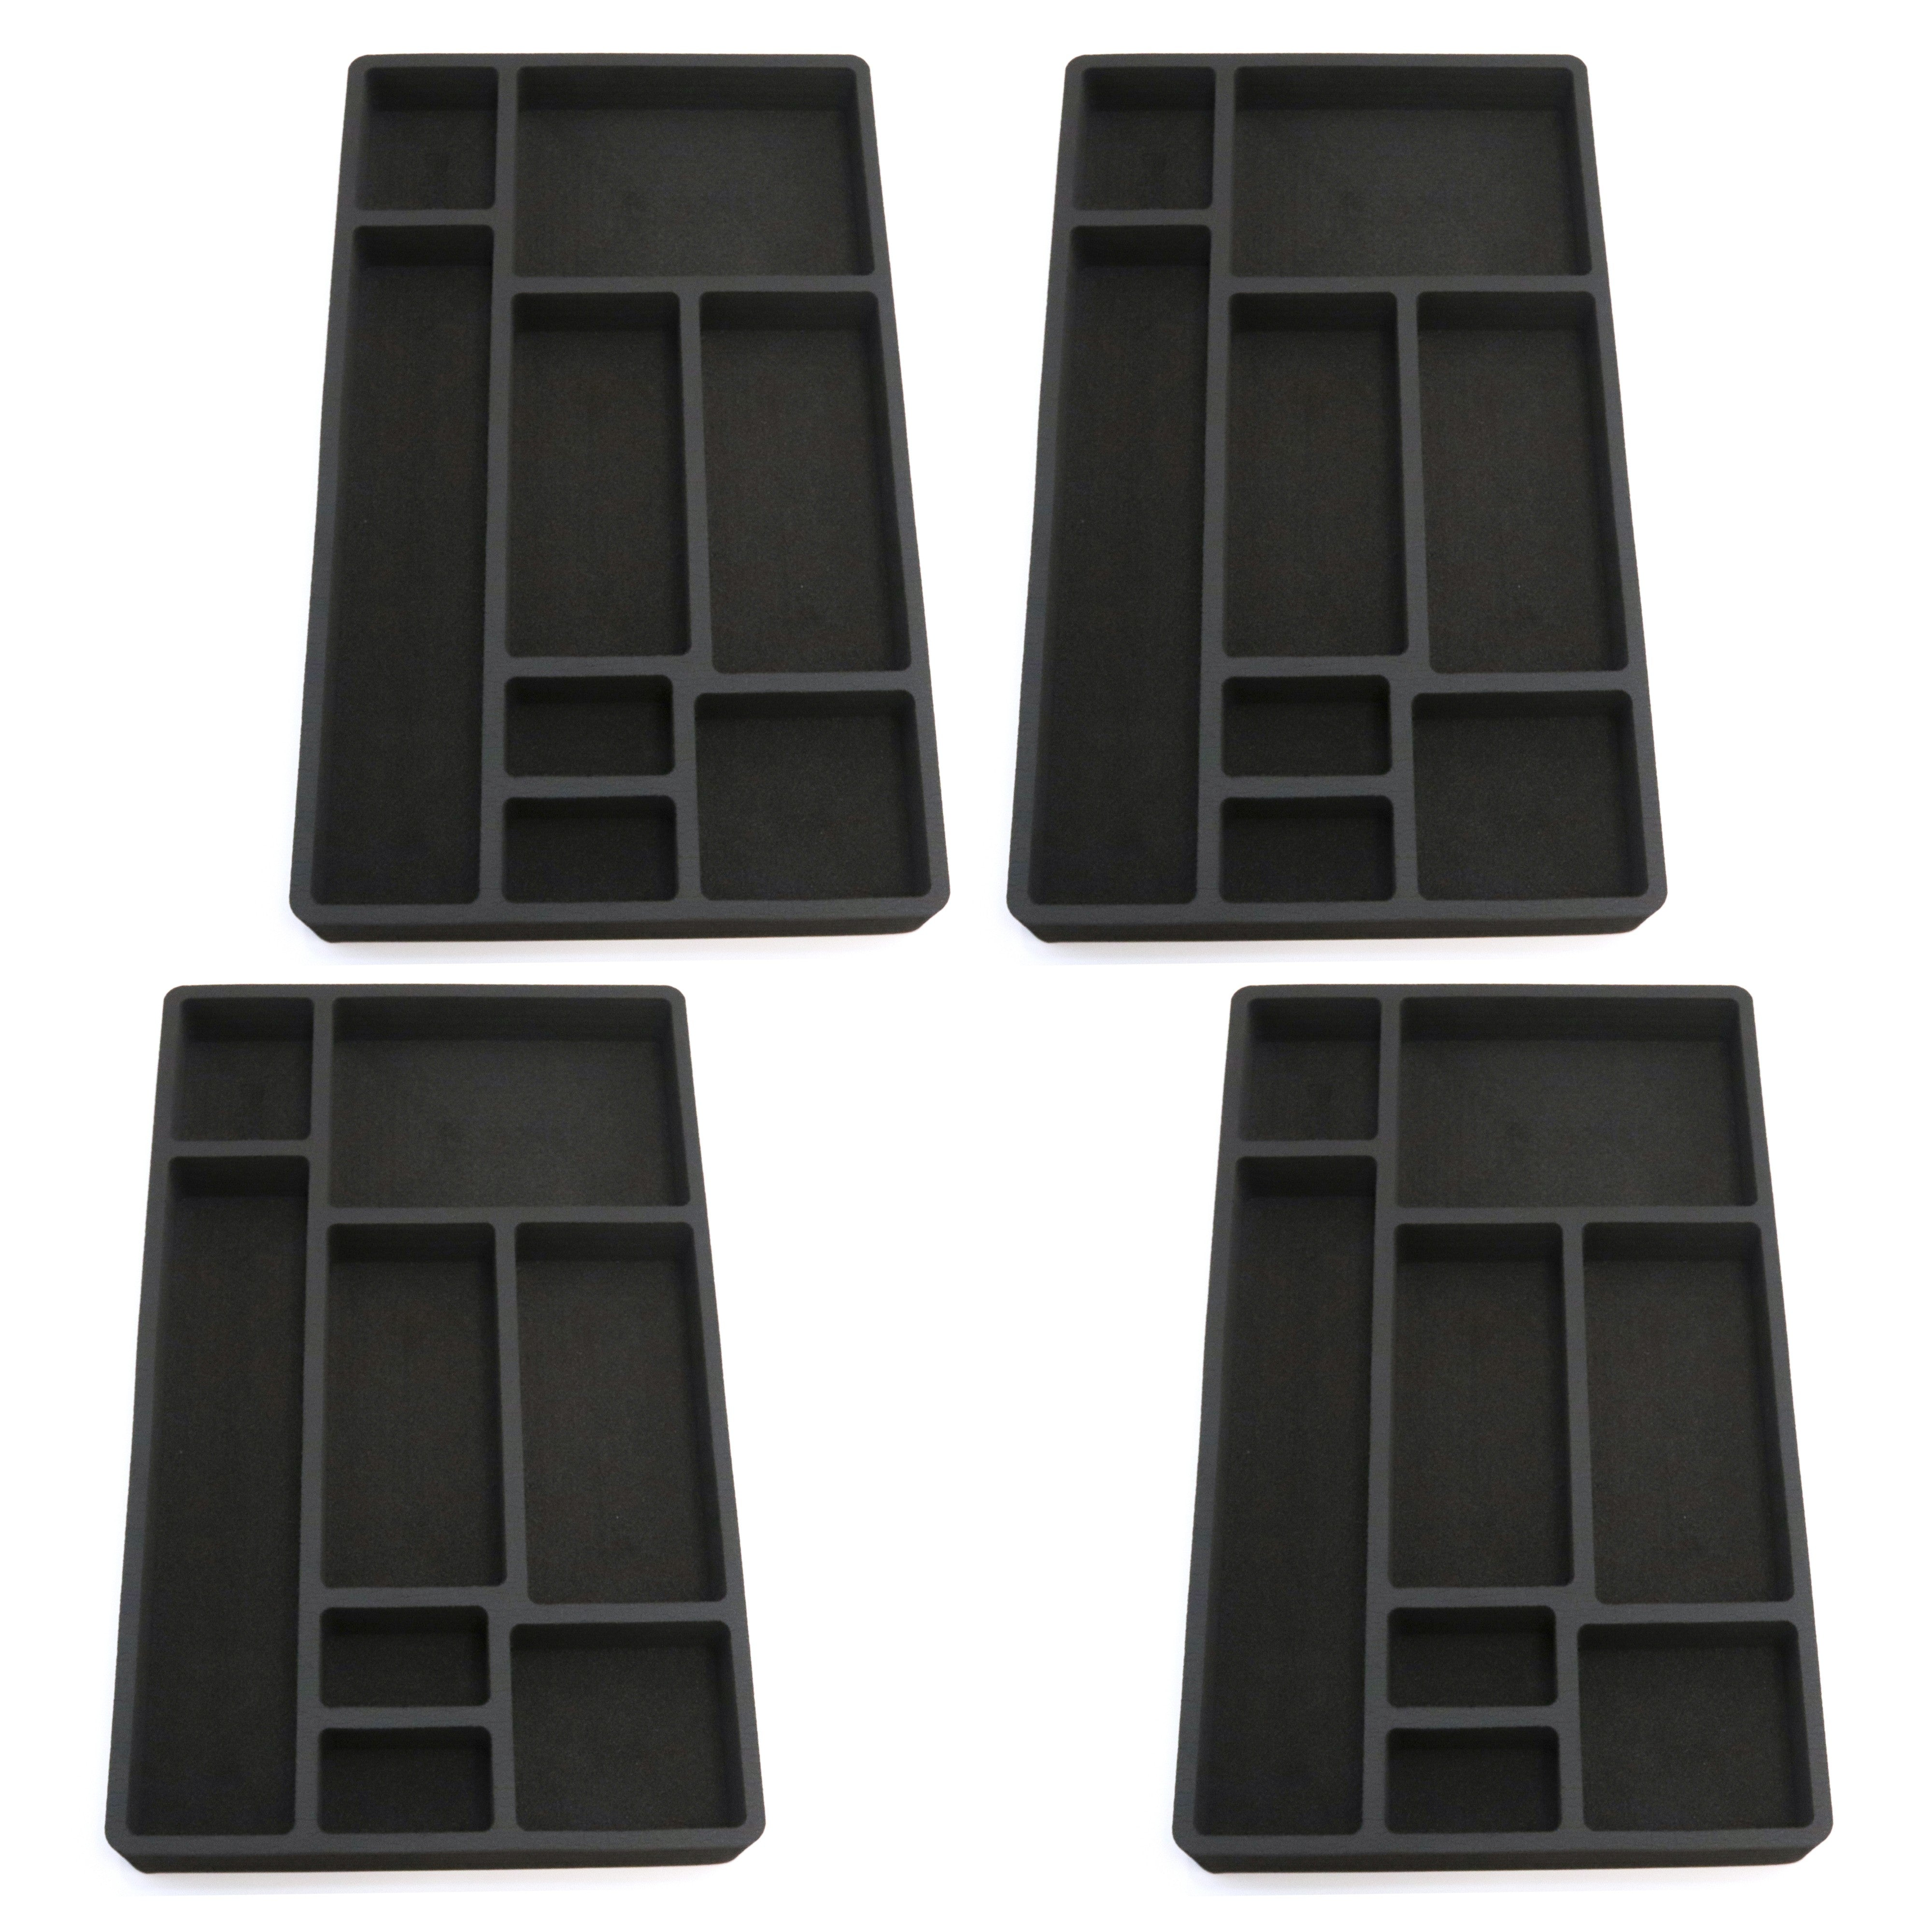 4 Piece Desk Drawer Organizers Tray Non-Slip Waterproof Insert 19.9 X 12.1 X 2 Inches Black 8 Compartments Extra Deep Set of 4